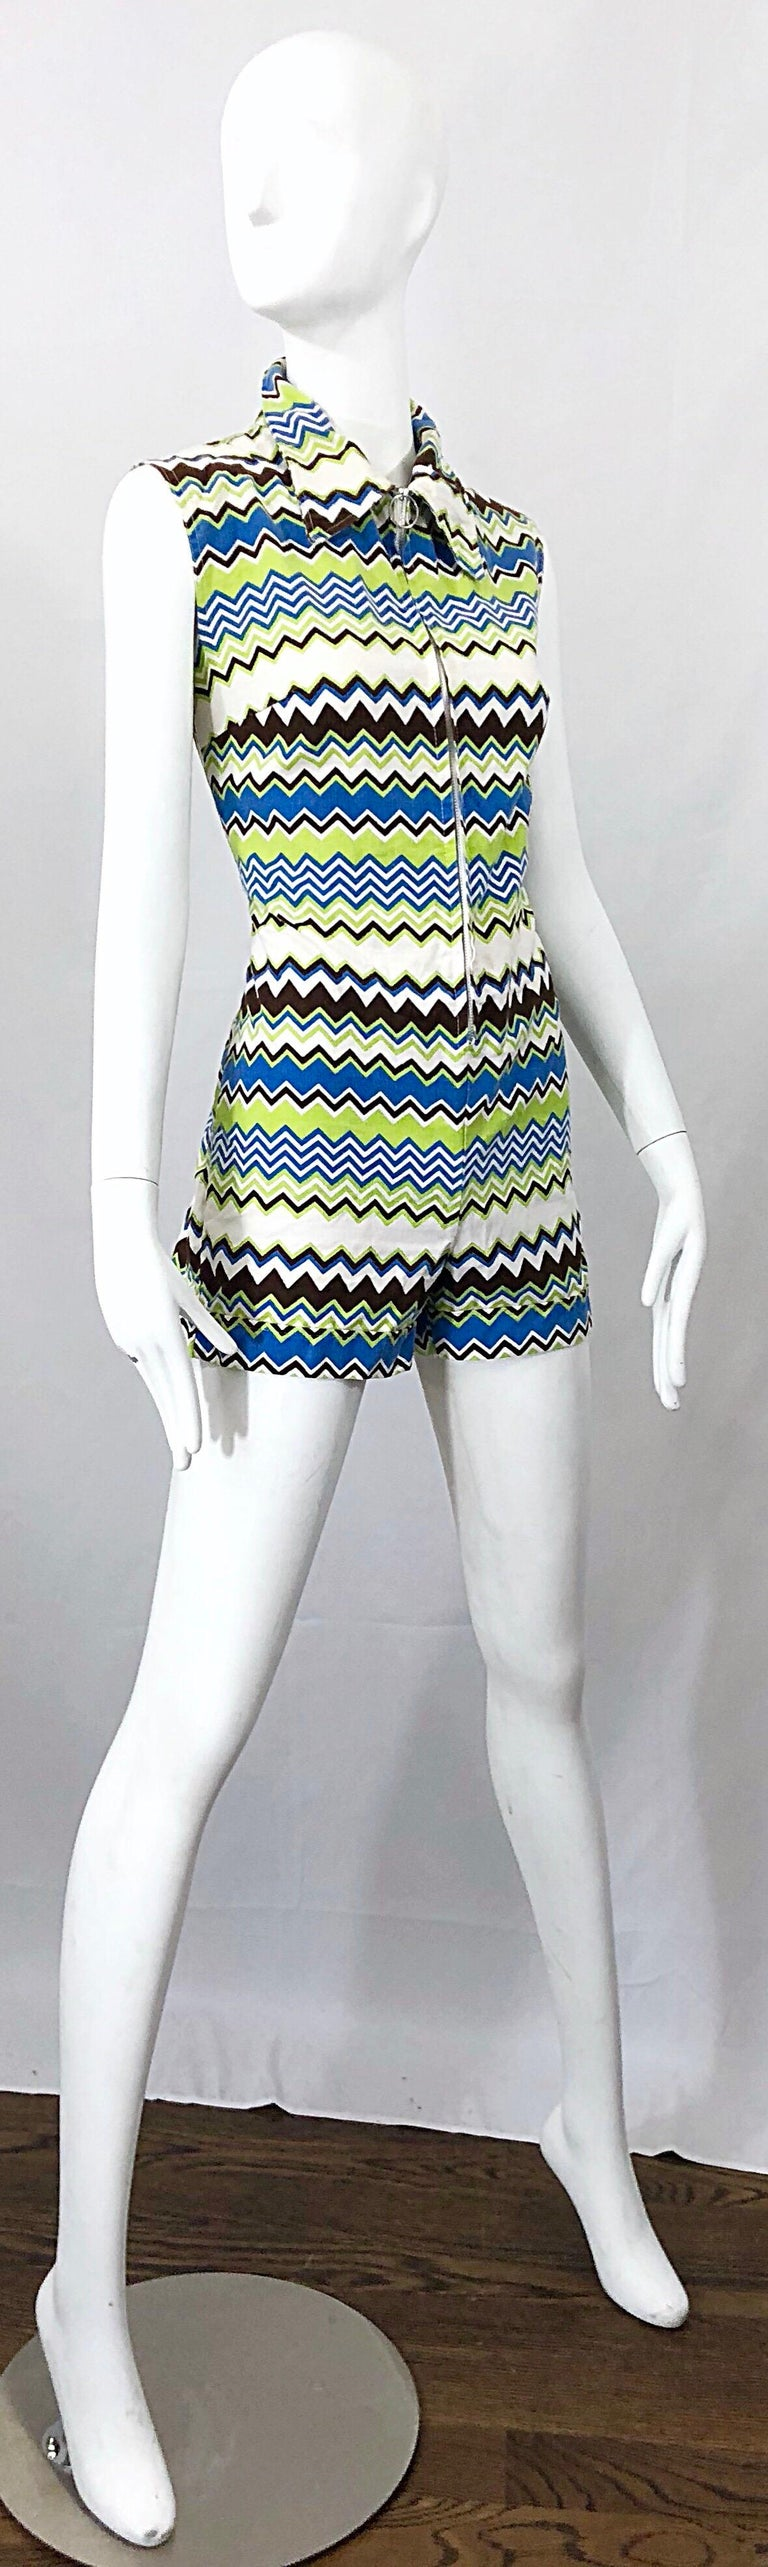 Chic 1970s Missoni Style Zig Zag Sleeveless Vintage 70s Cotton One Piece Romper In Excellent Condition For Sale In Chicago, IL